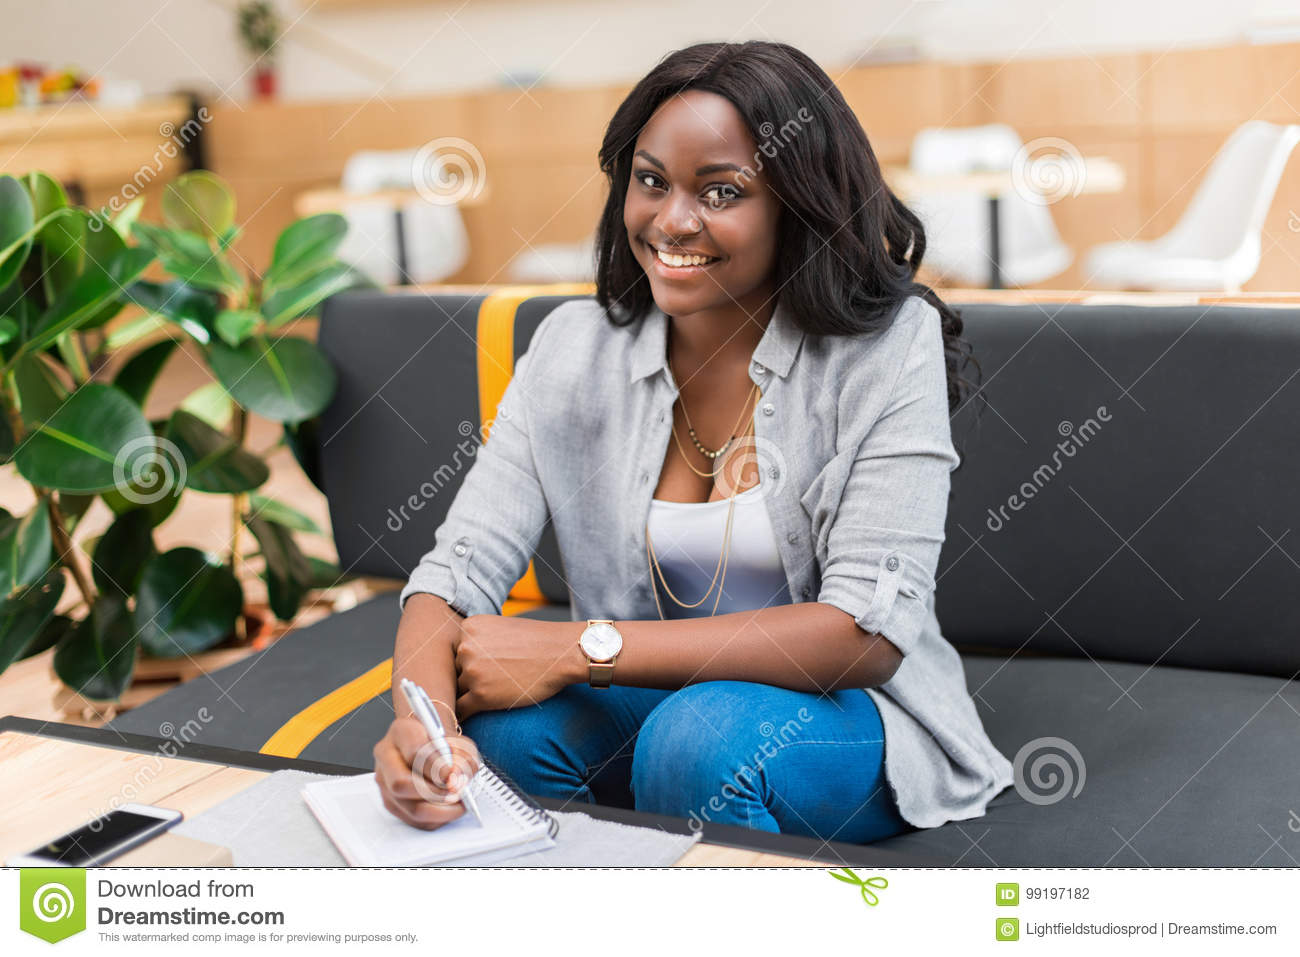 Woman writing something in notepad while sitting in cafe